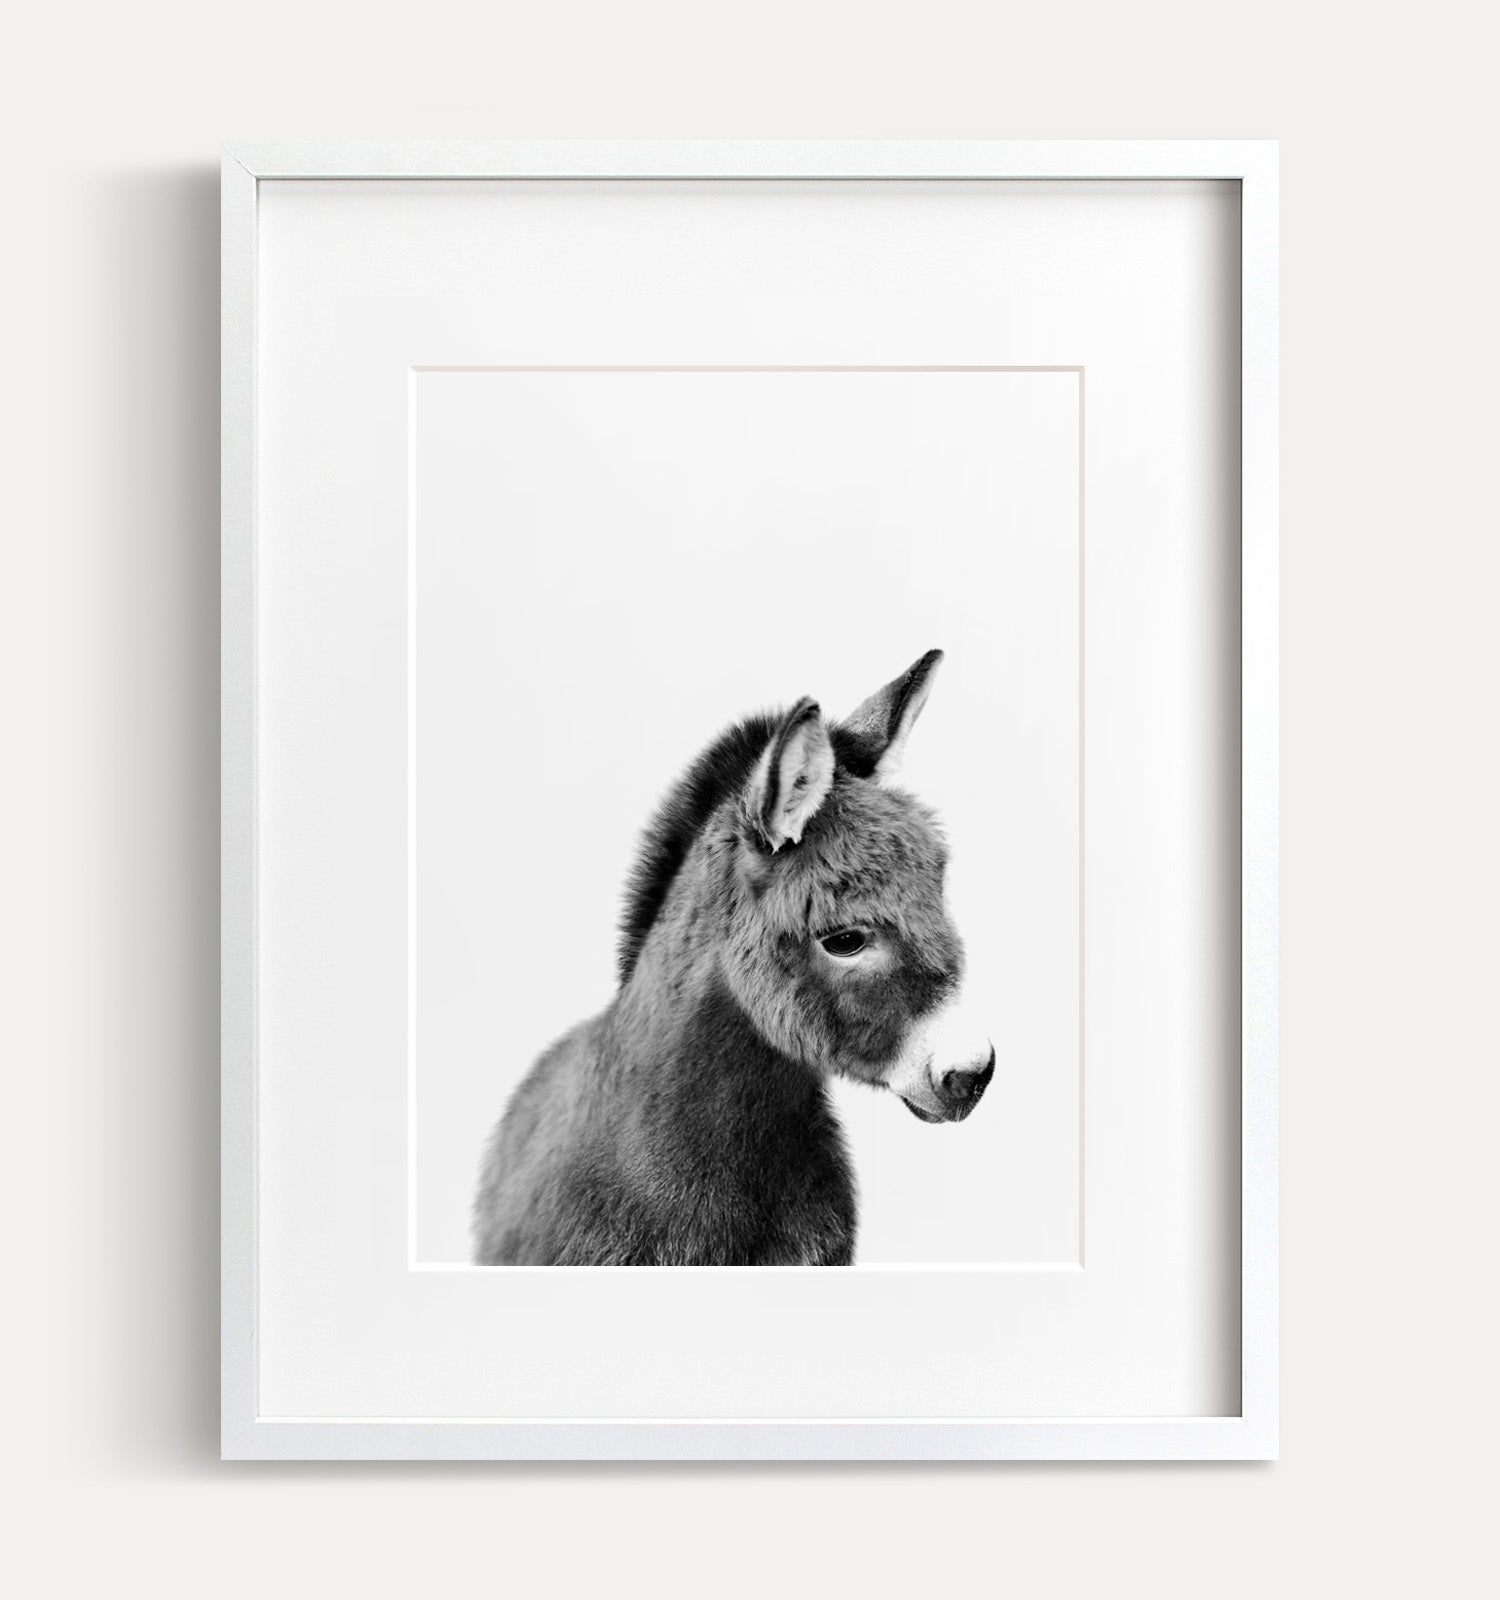 Baby Donkey Print - Black and White - The Crown Prints